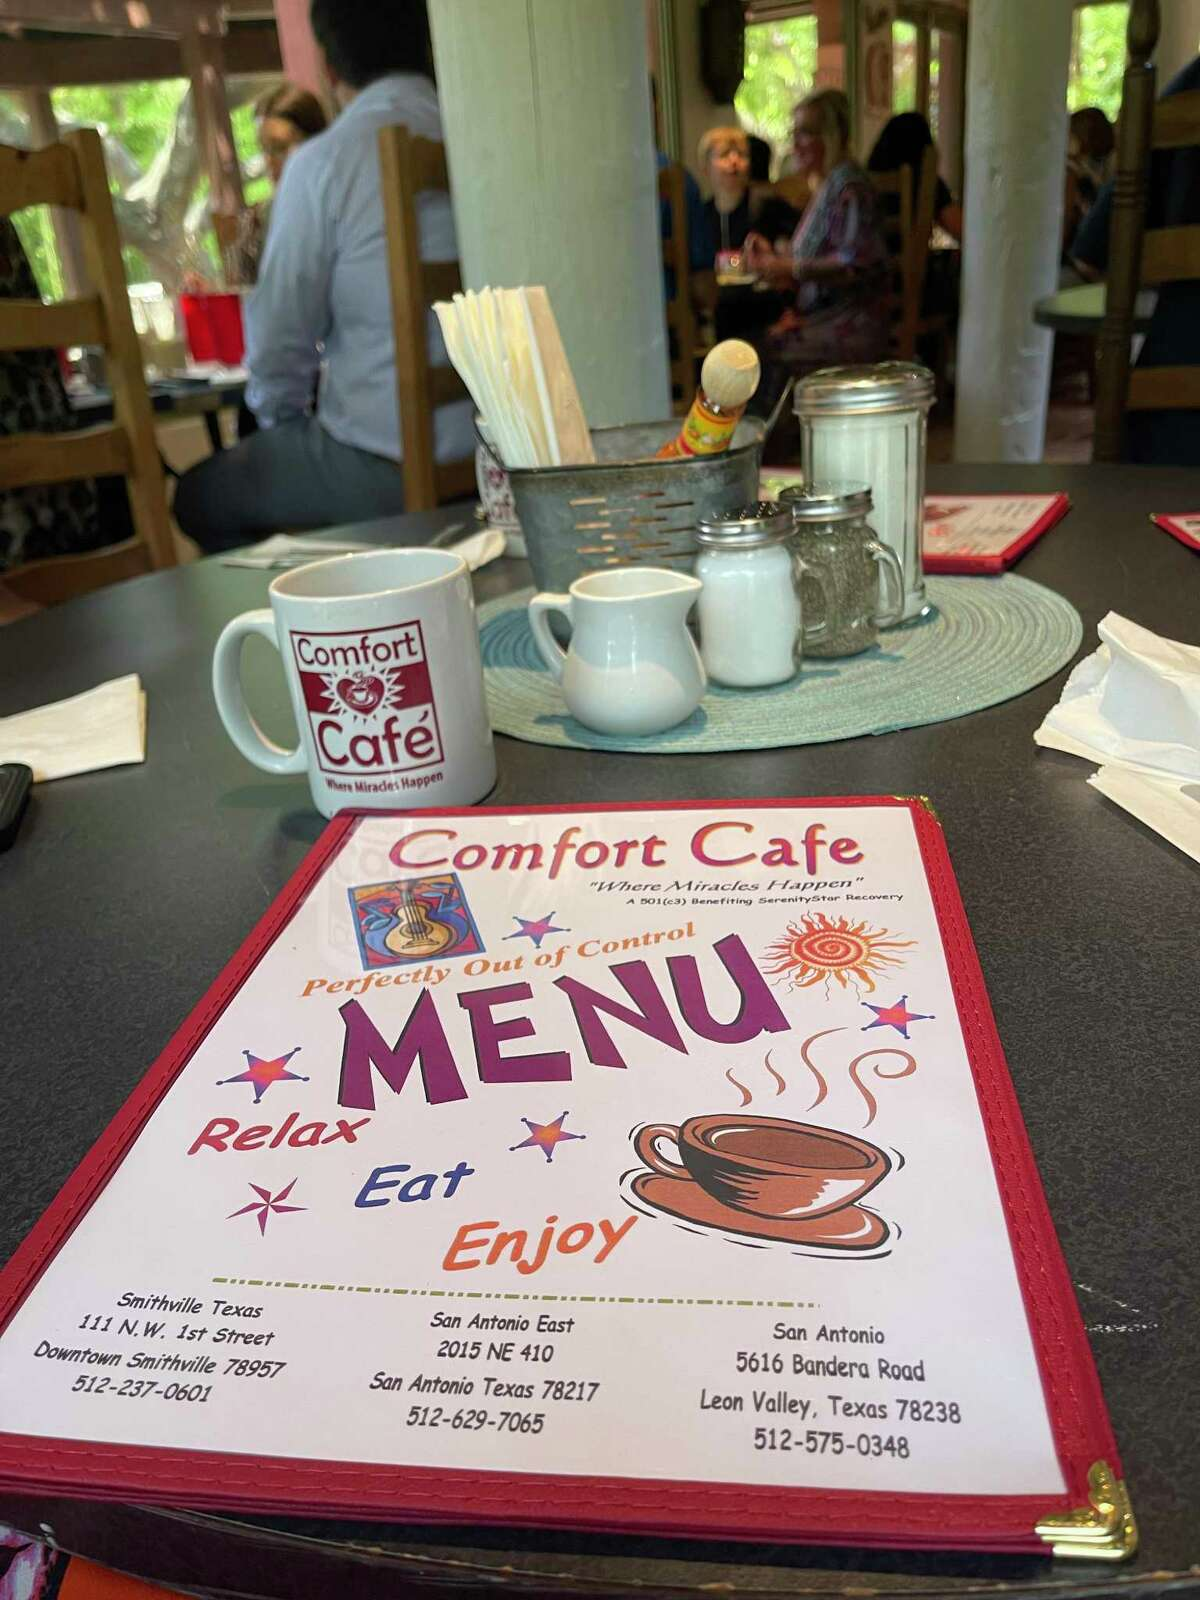 Comfort Café has expanded to three locations, and the menu exudes positive vibes.